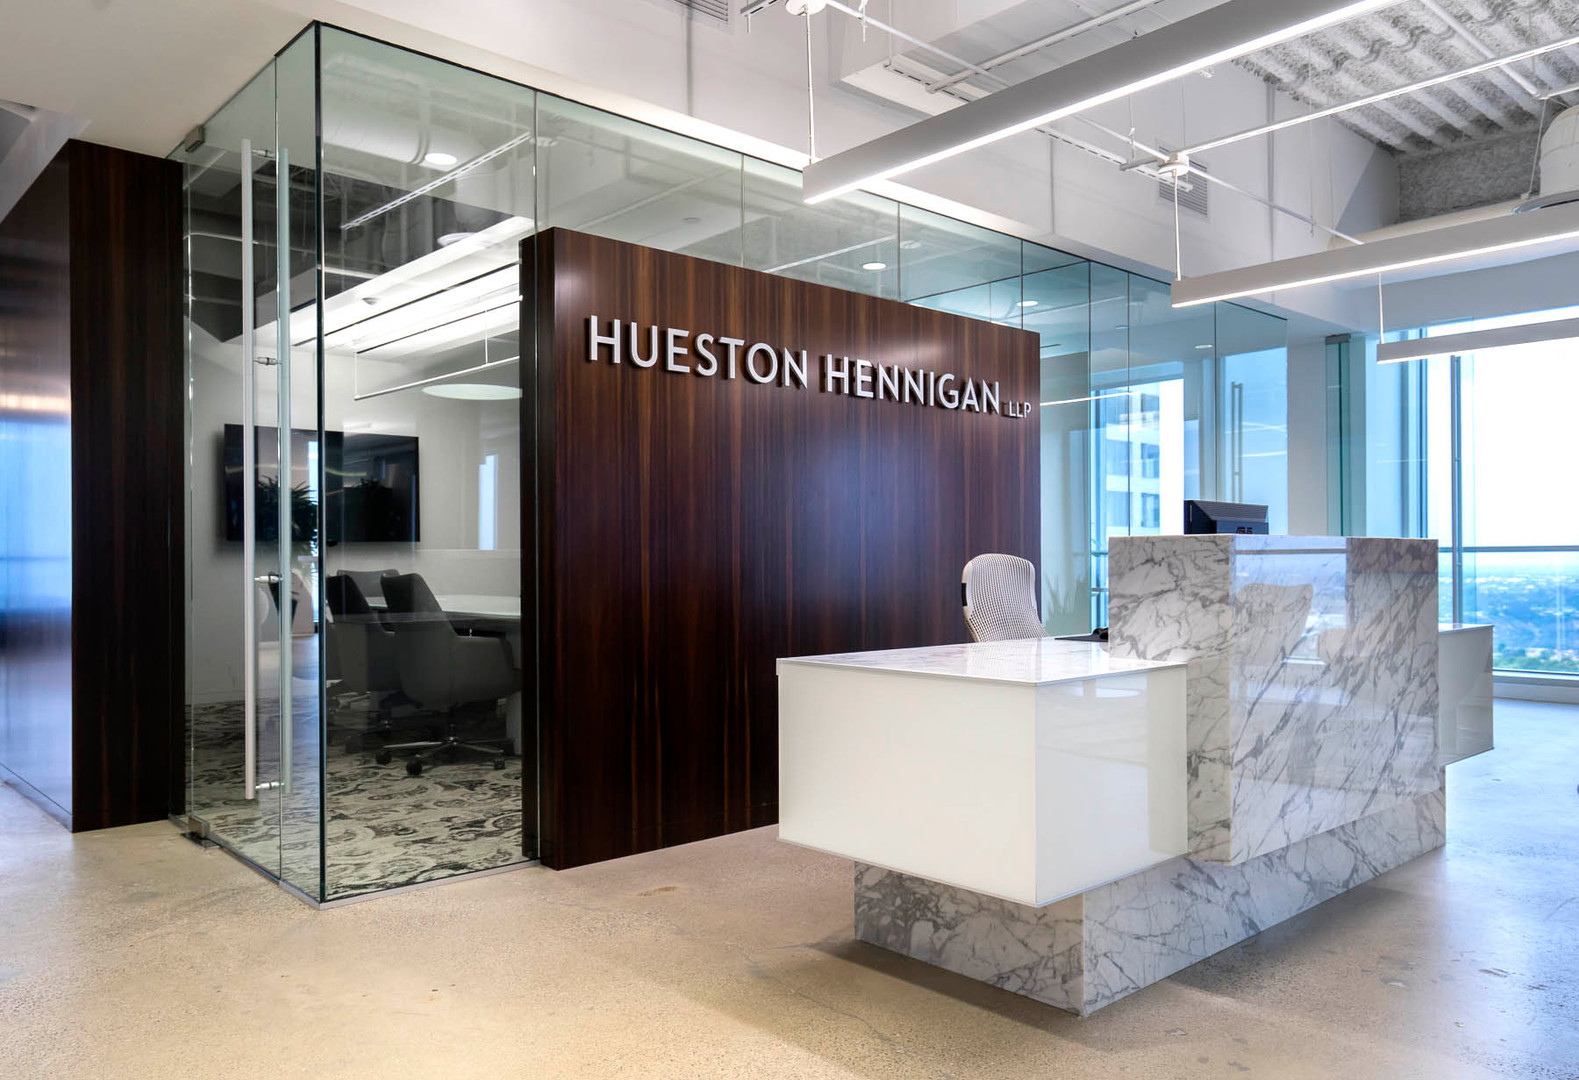 Hueston Hennigan Los Angeles lobby